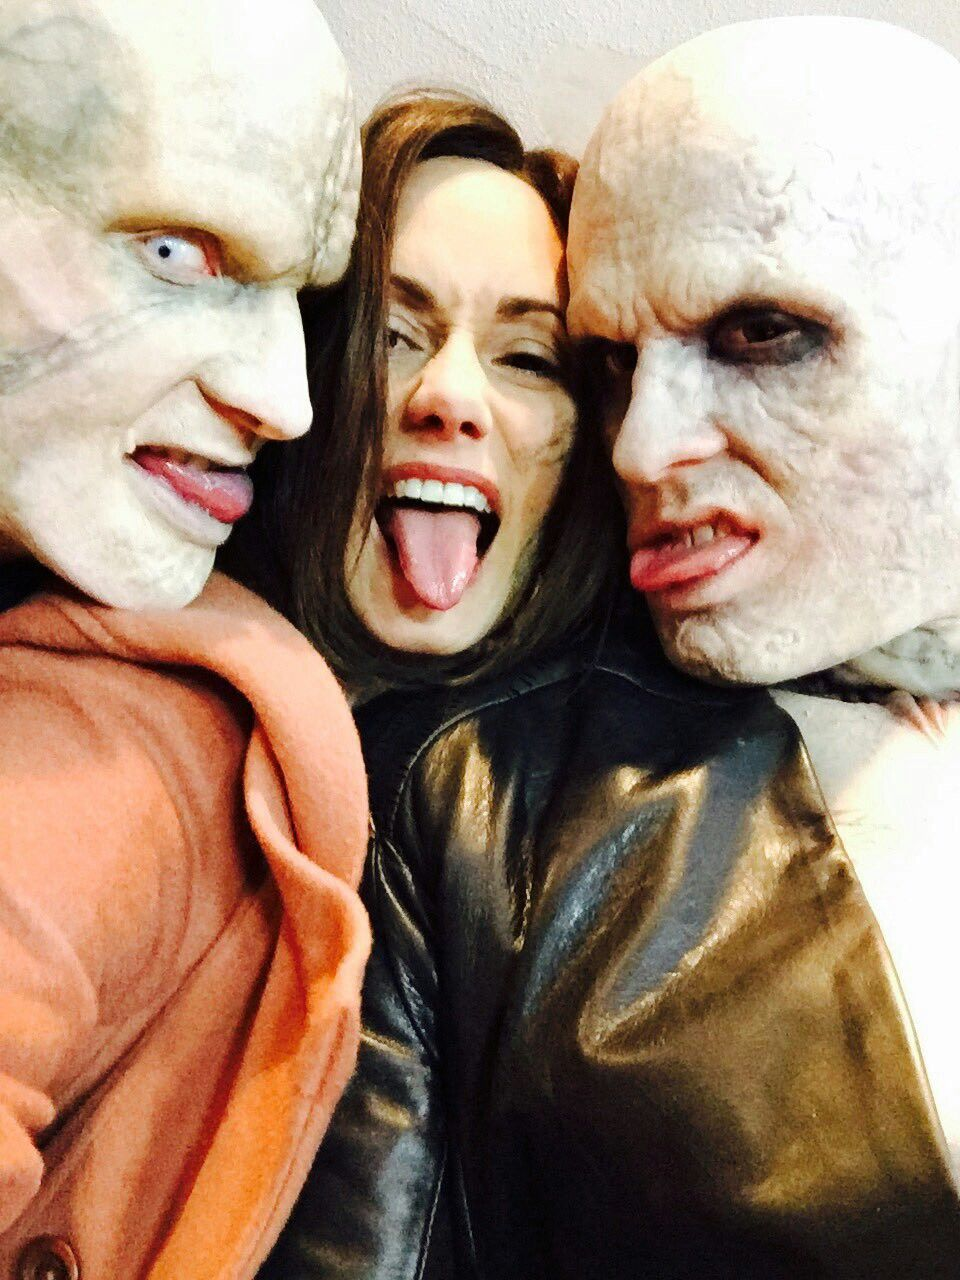 The Strain Playful cast members The strain tv show